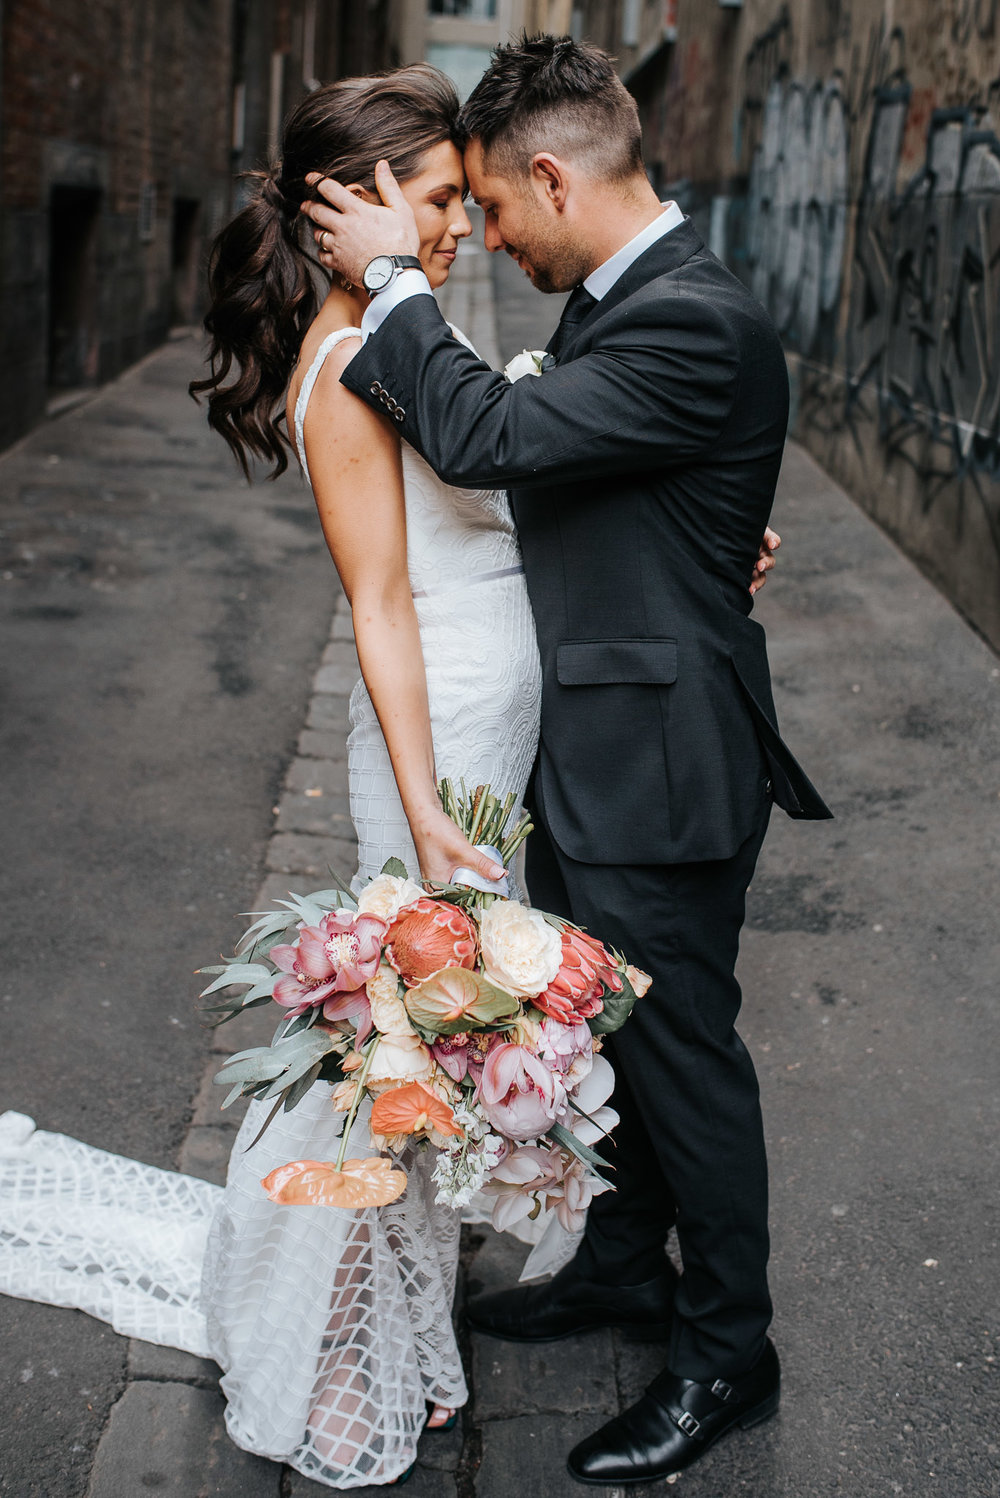 Melbourne wedding photography Tonic House and Melbourne laneways